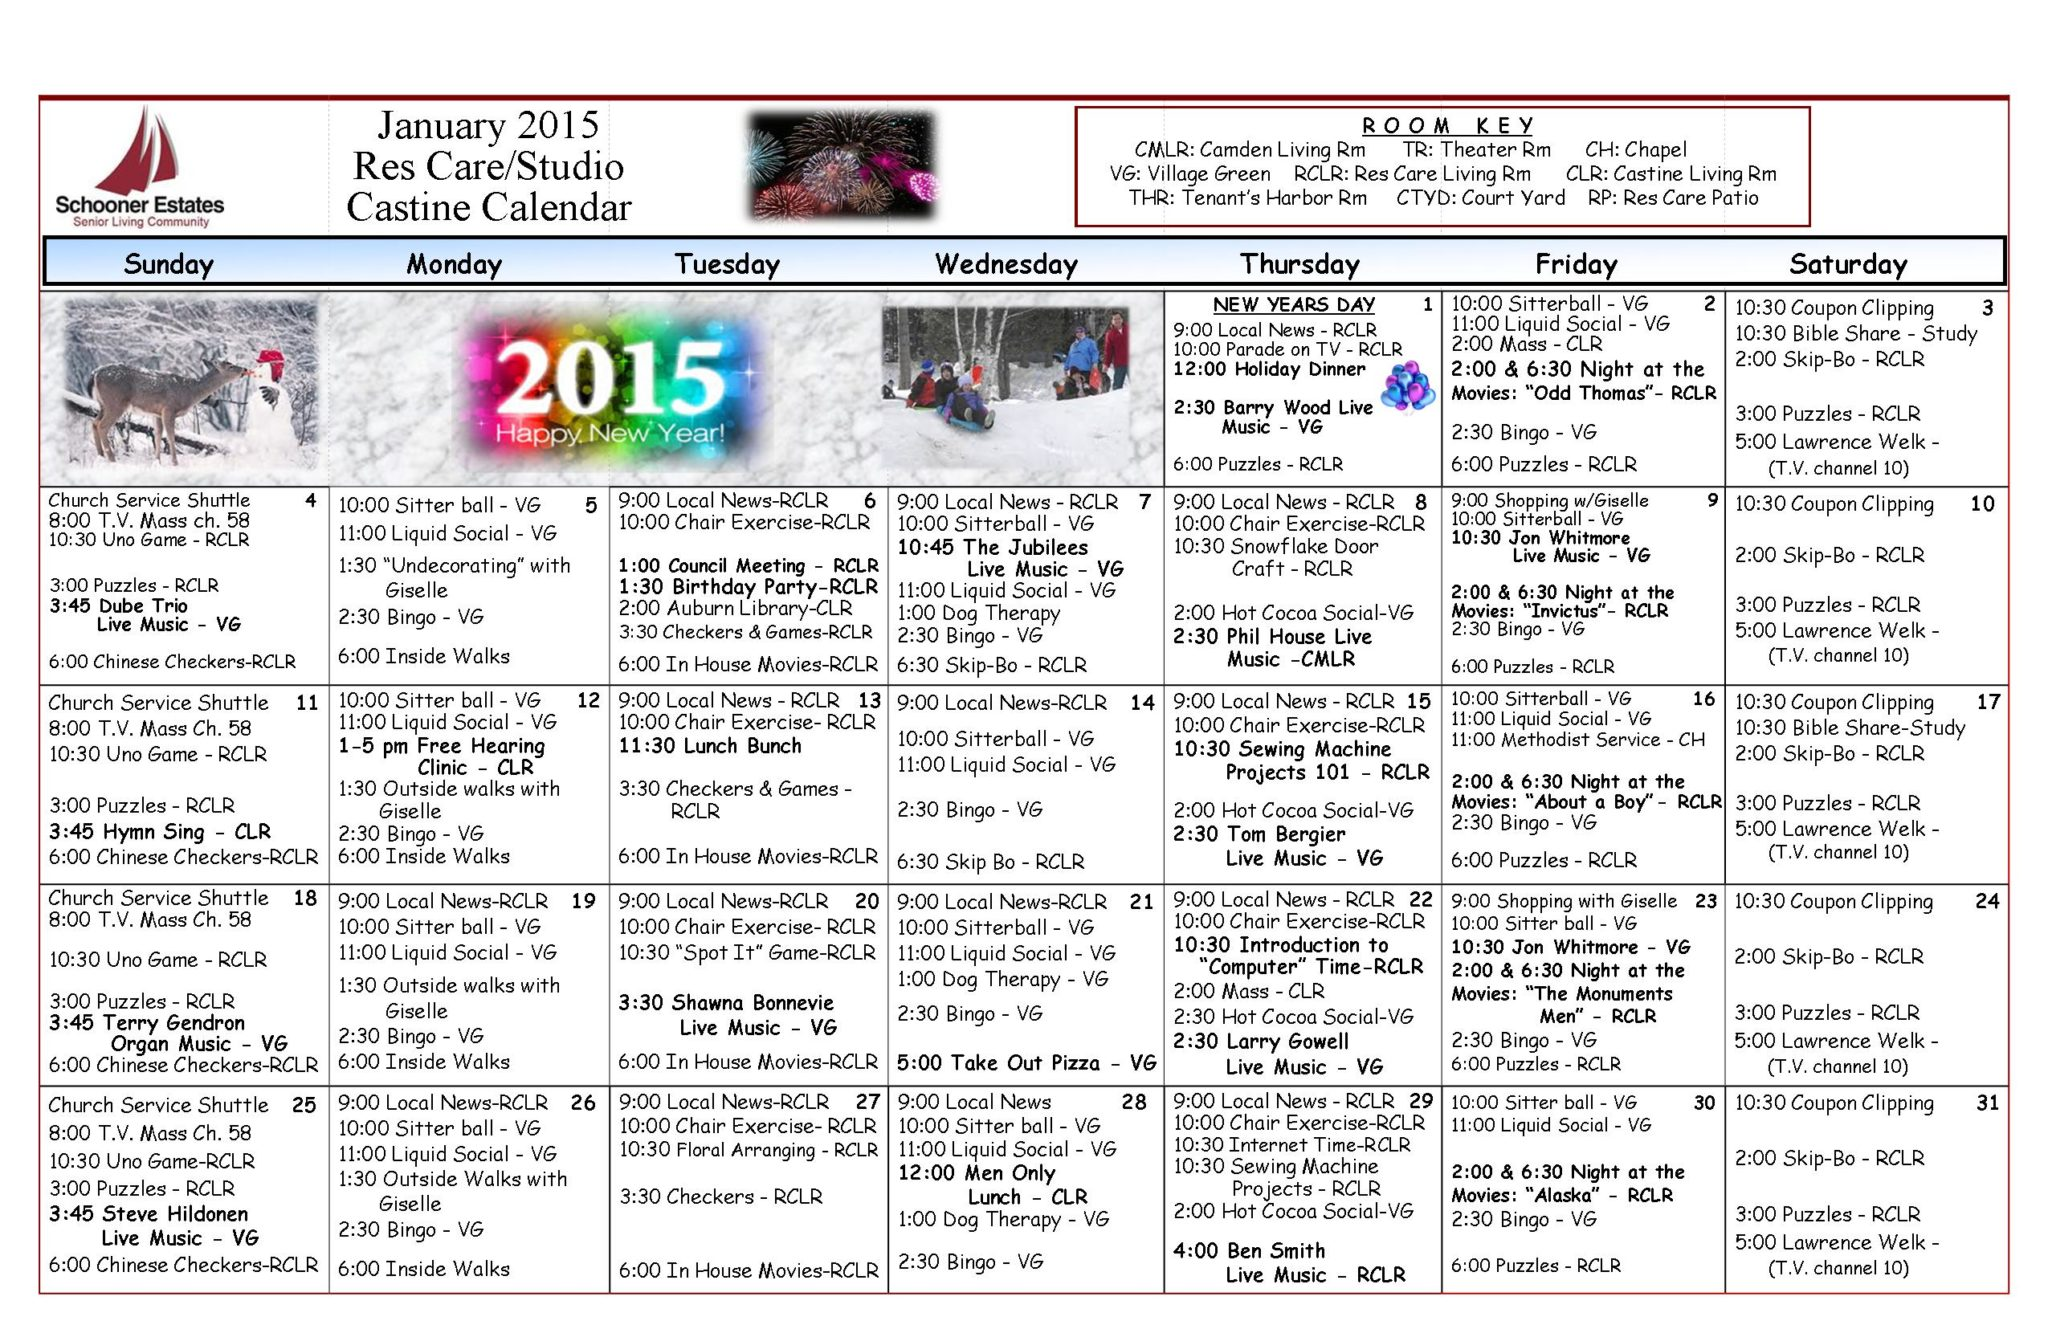 01 Res Care January Calendar 2015